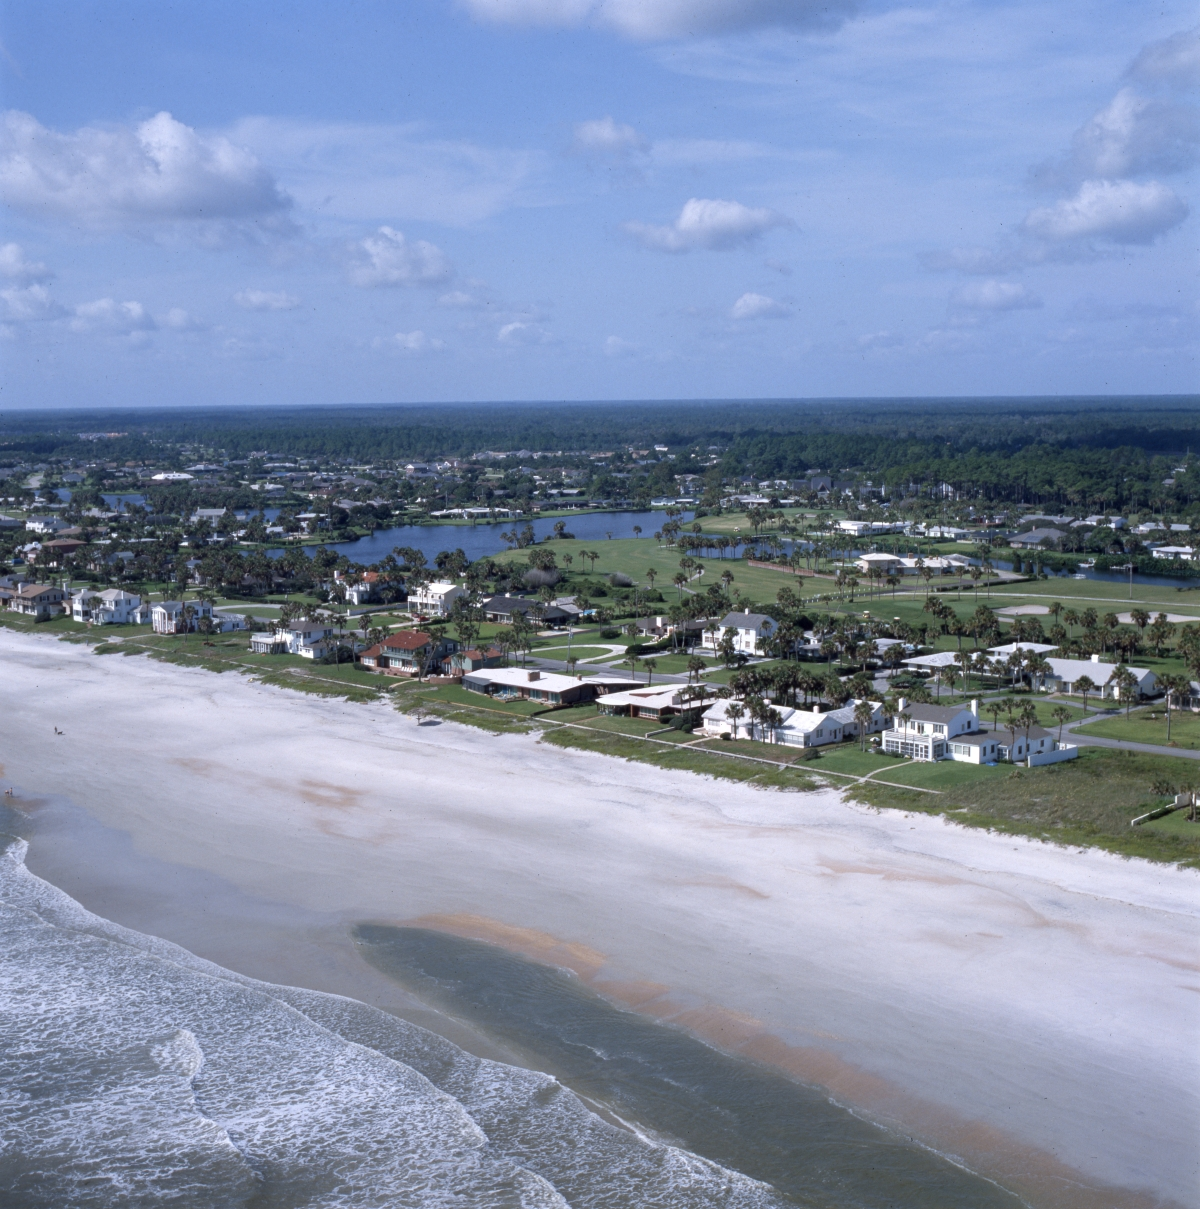 Aerial view looking southwest at houses next to the Ponte Vedra Inn & Club golf course.